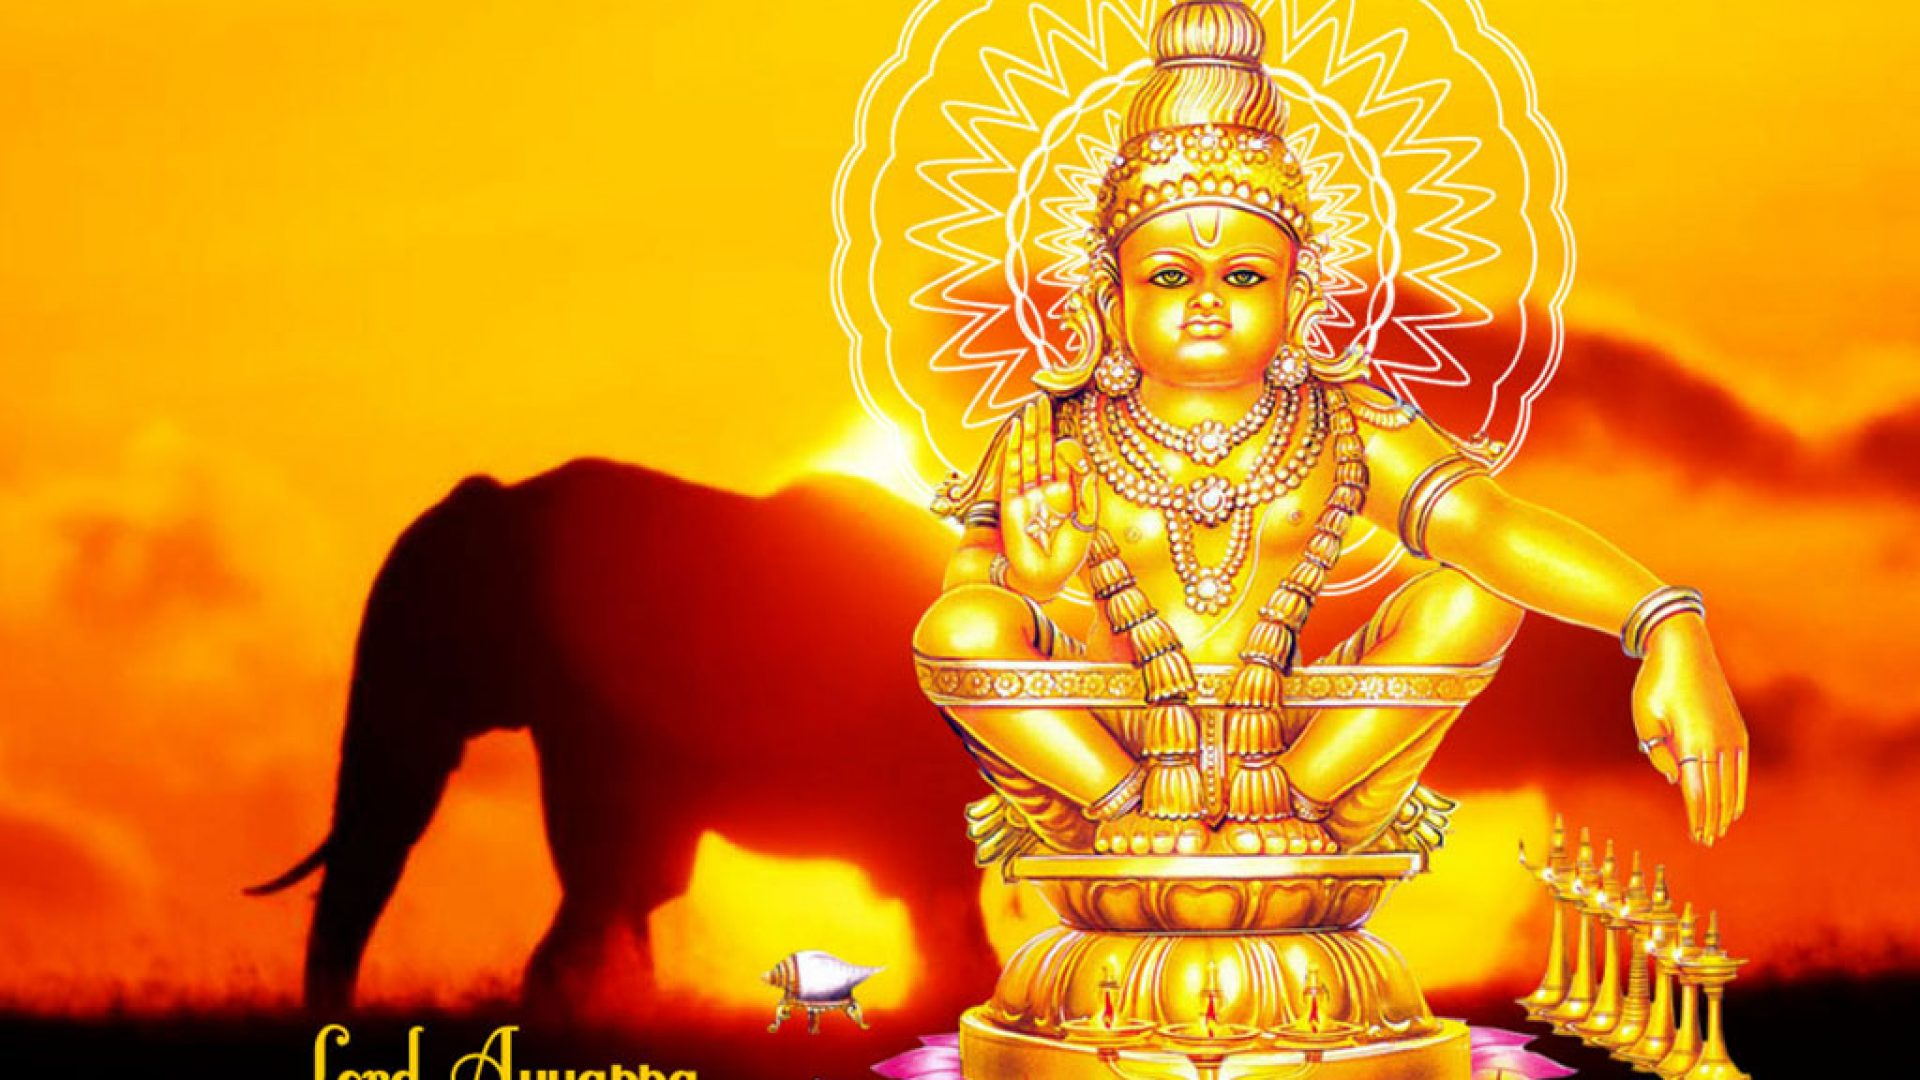 Ayyappa 1080p Hd Images Download